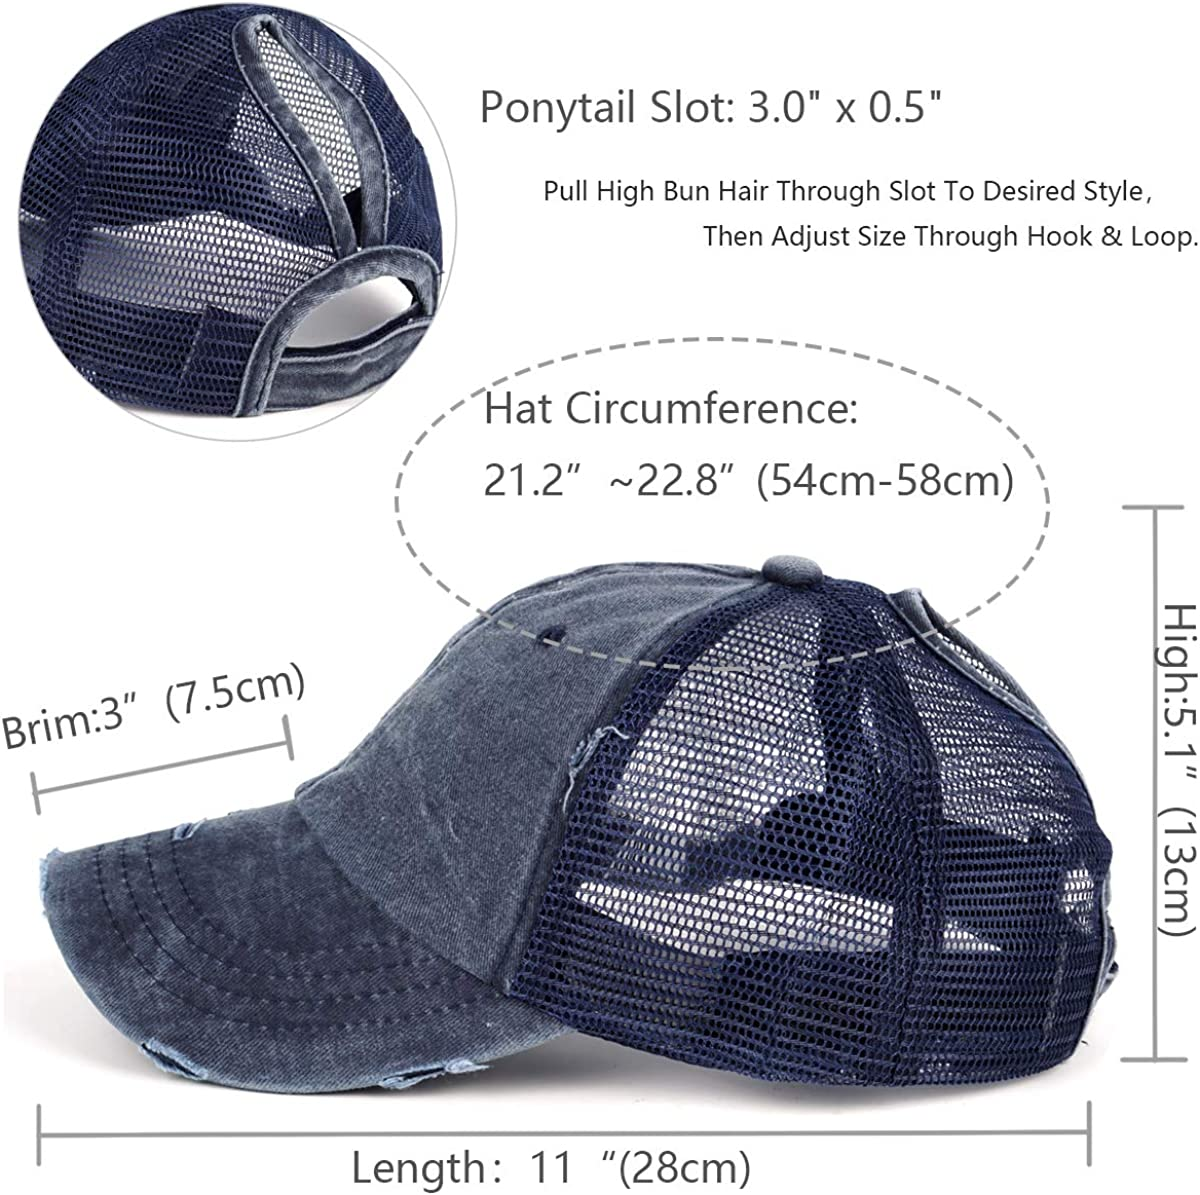 Criss Cross Ponytail Hat,Washed Distressed Ponytail Baseball Cap for Women,Cotton High Messy Buns Hats Adjustable Ponycaps